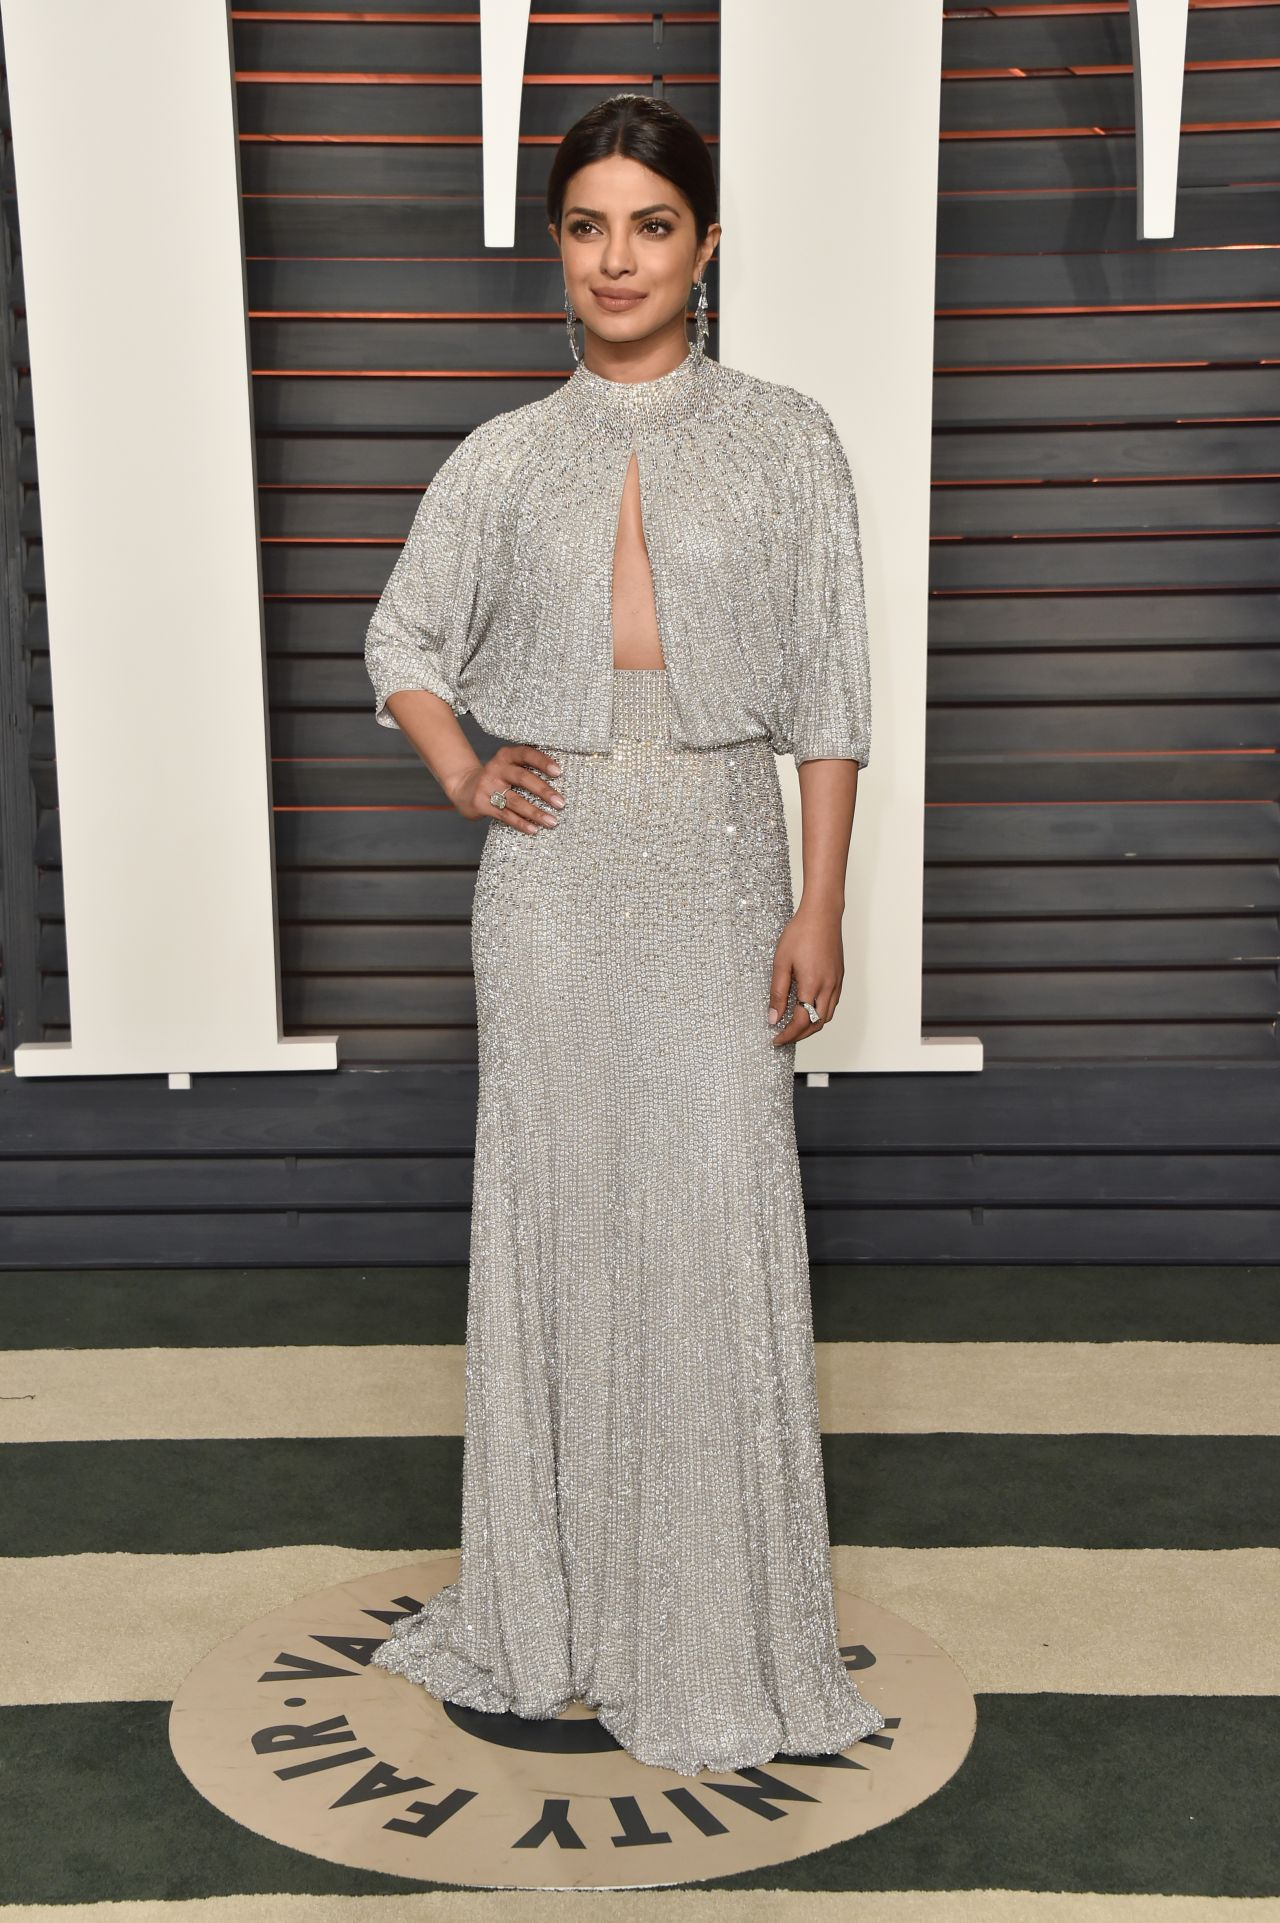 priyanka-chopra-2016-vanity-fair-oscar-party-in-beverly-hills-ca-2